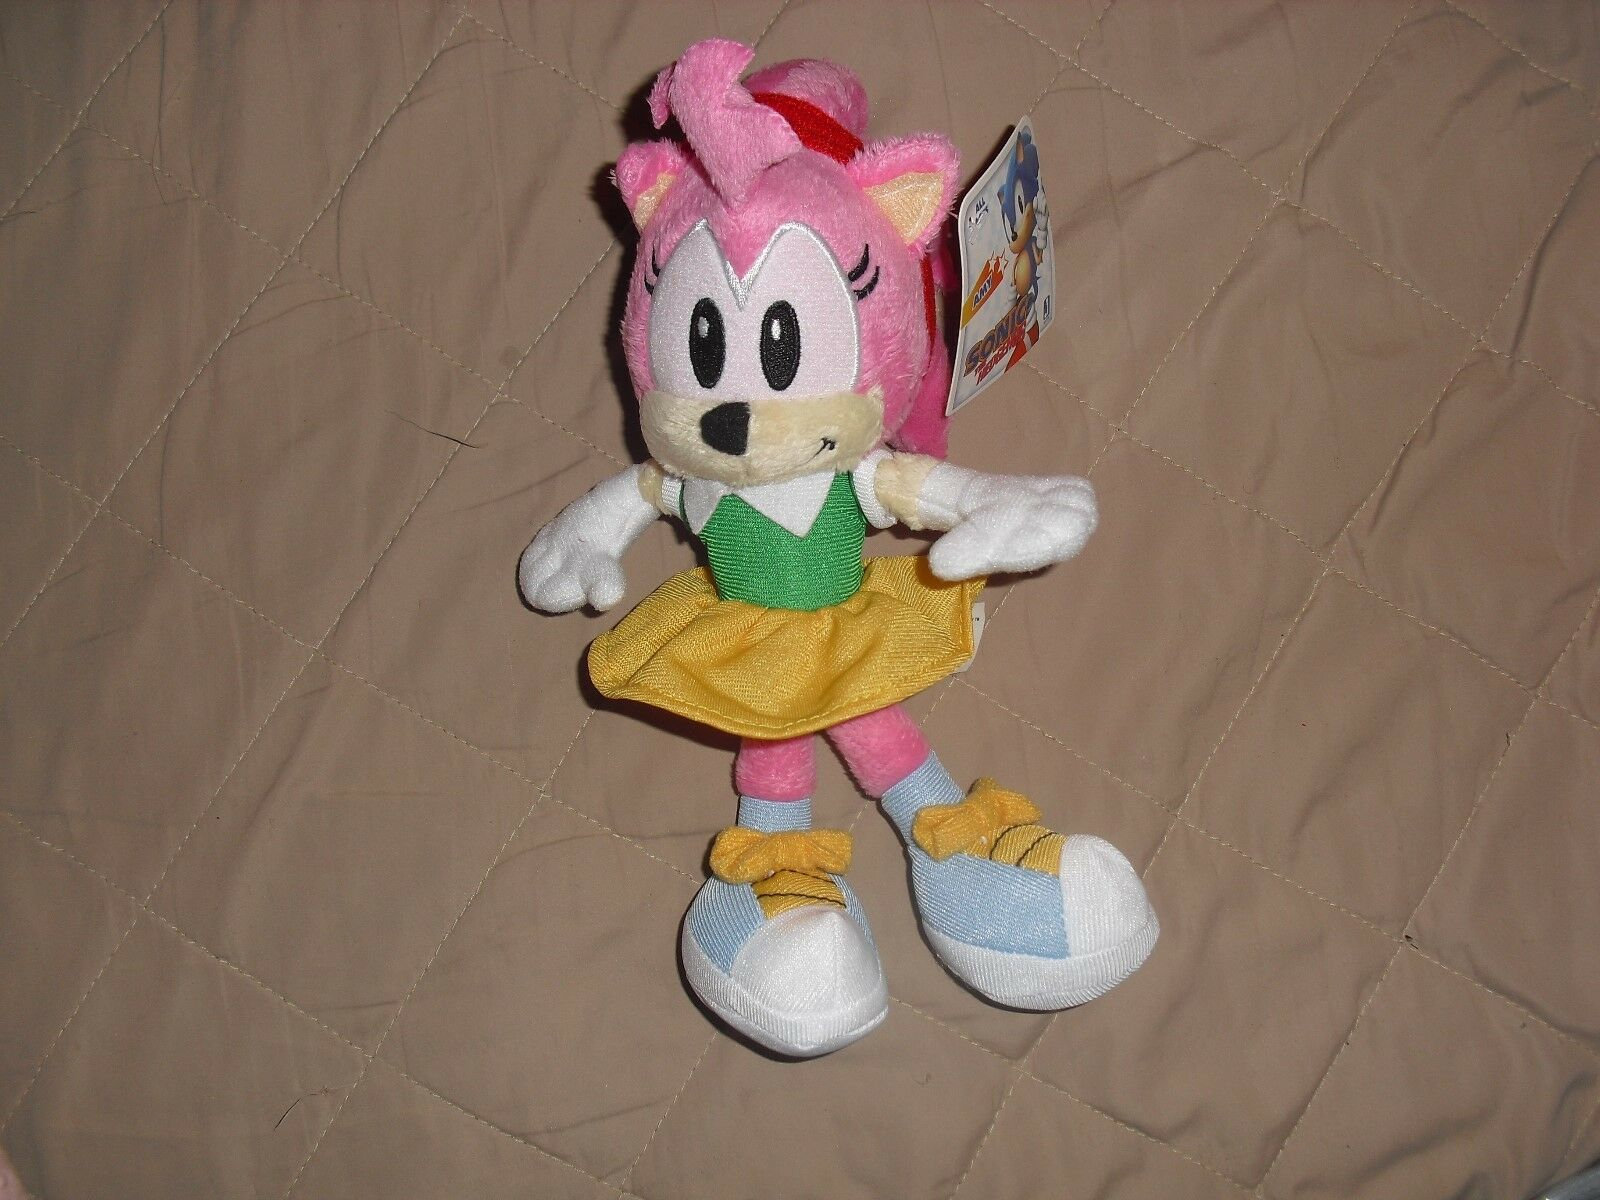 Amy Jazwares plush sonic the hedgehog toy